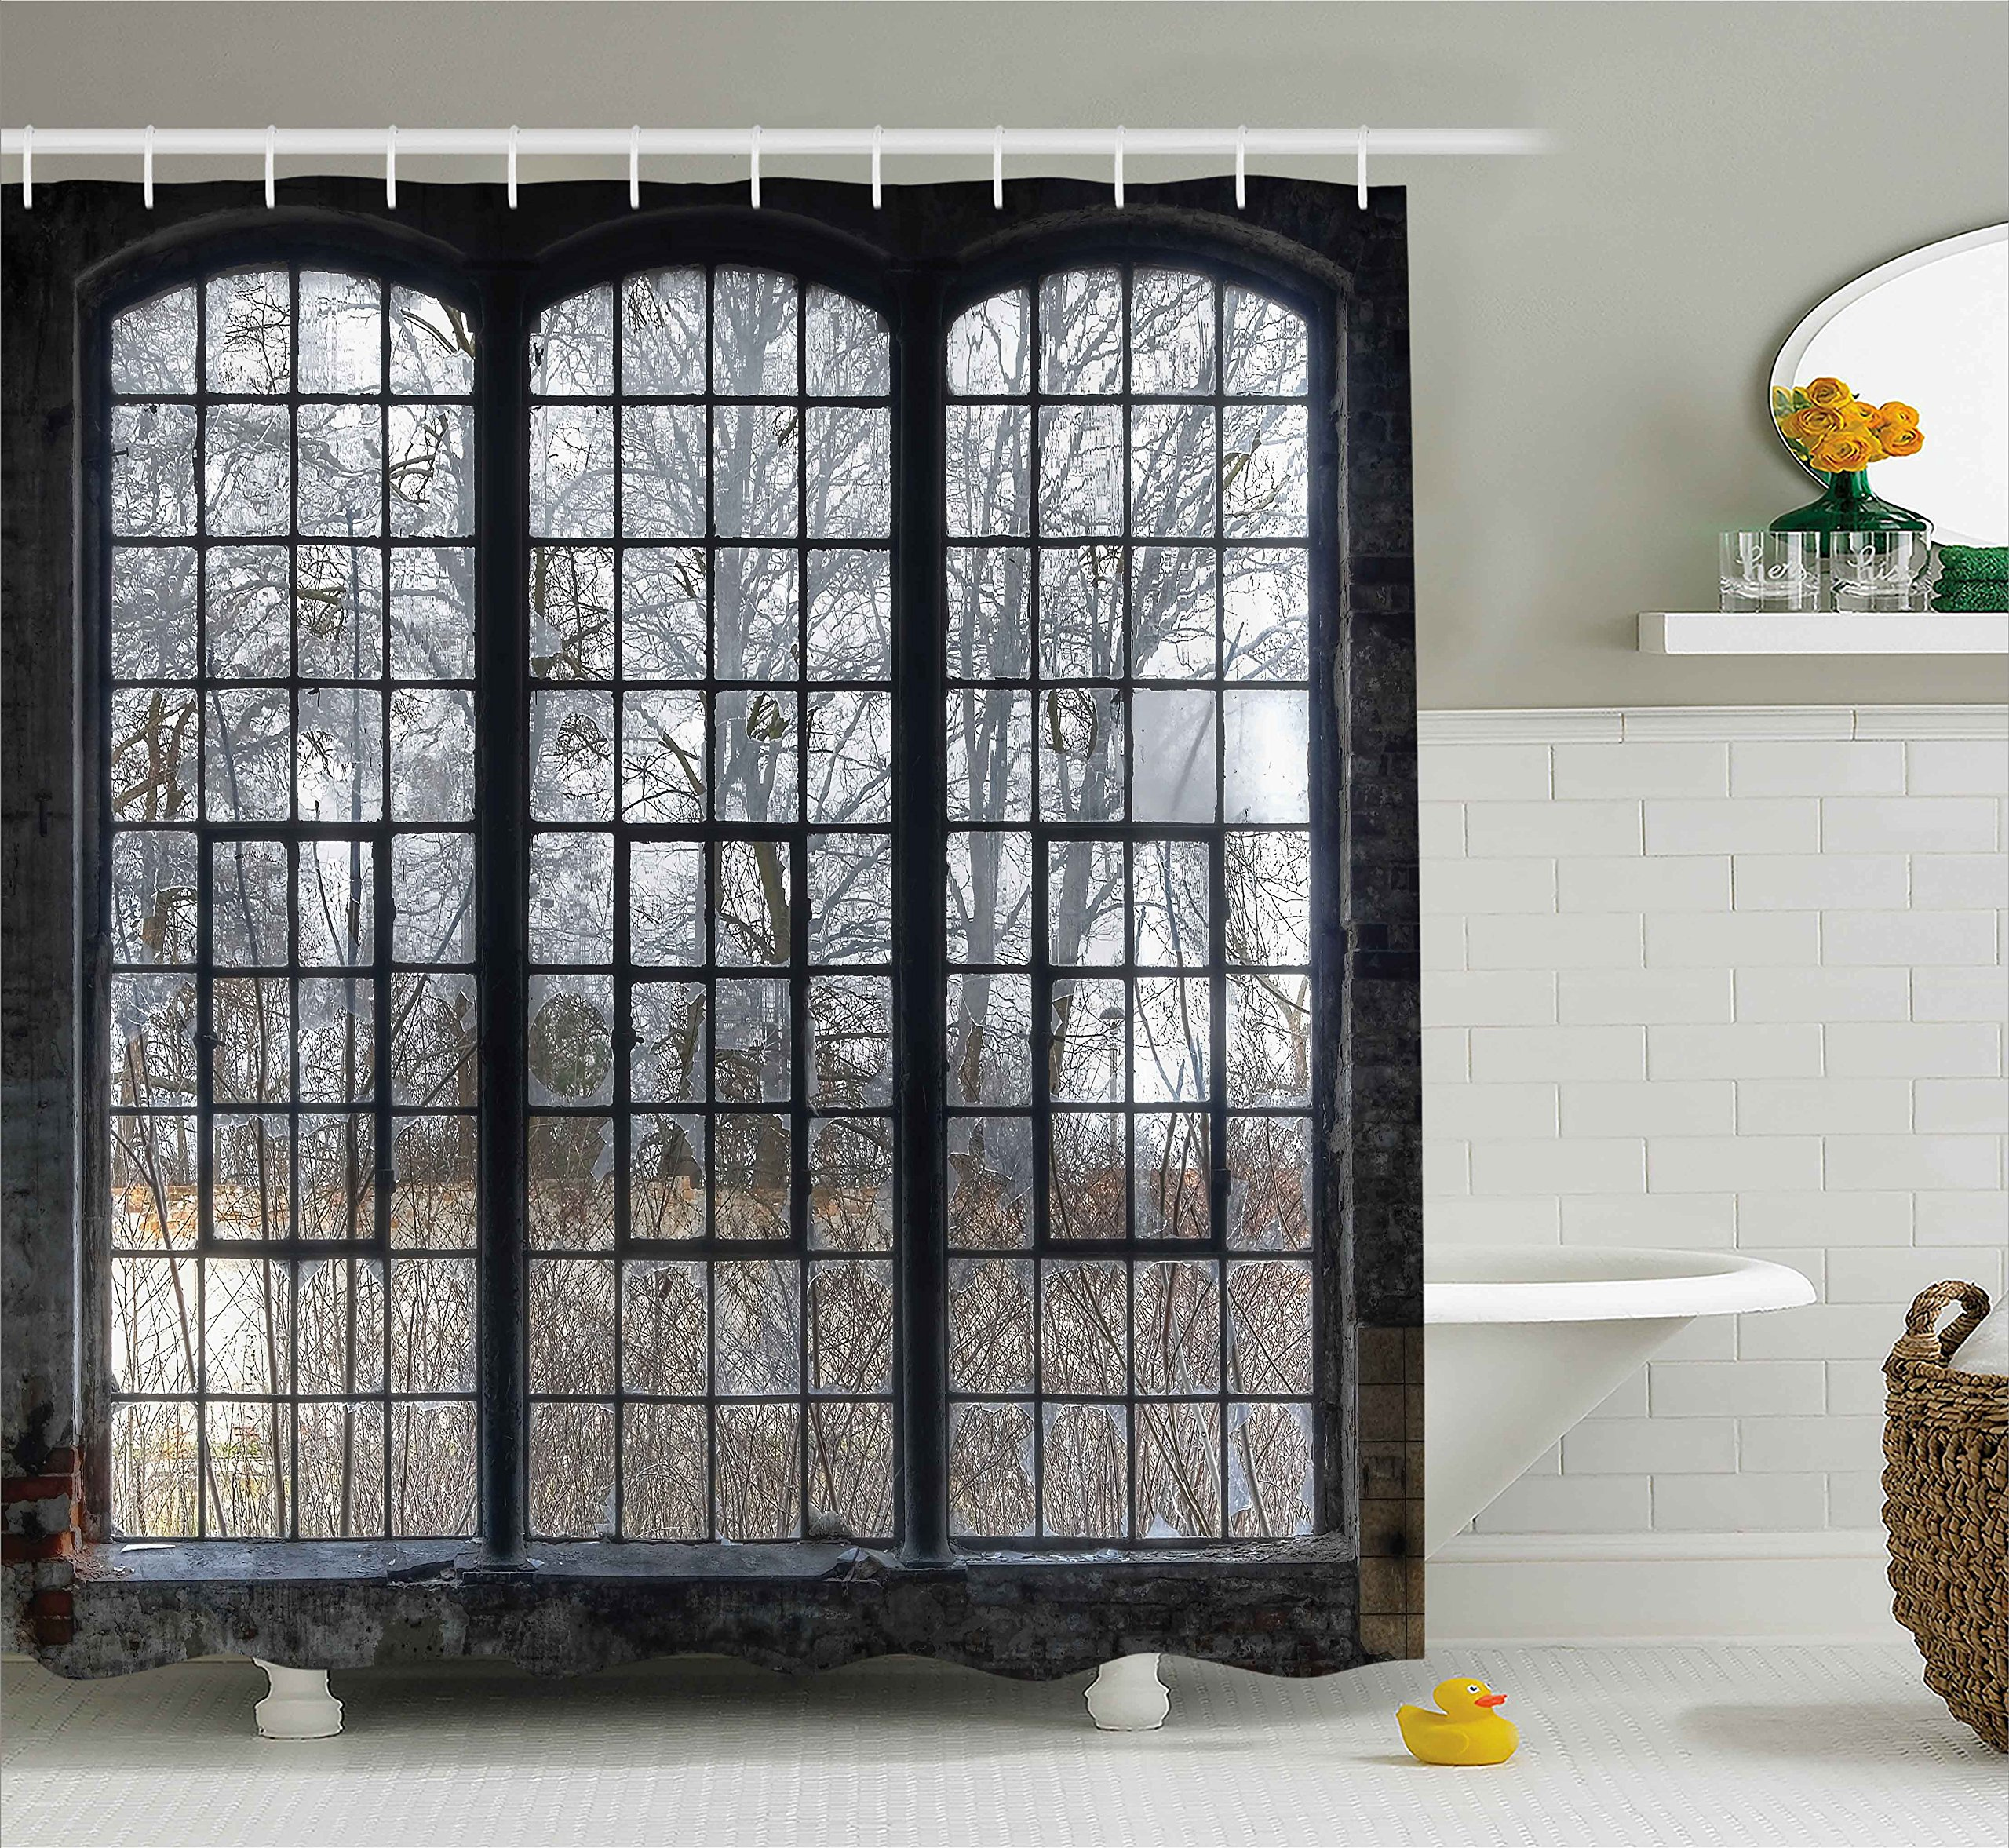 Ambesonne Industrial Decor Collection, Old Large Window with Broken Panes in a Deserted Hall near Forest Trees Winter Time Style, Polyester Fabric Bathroom Shower Curtain Set with Hooks, Grey